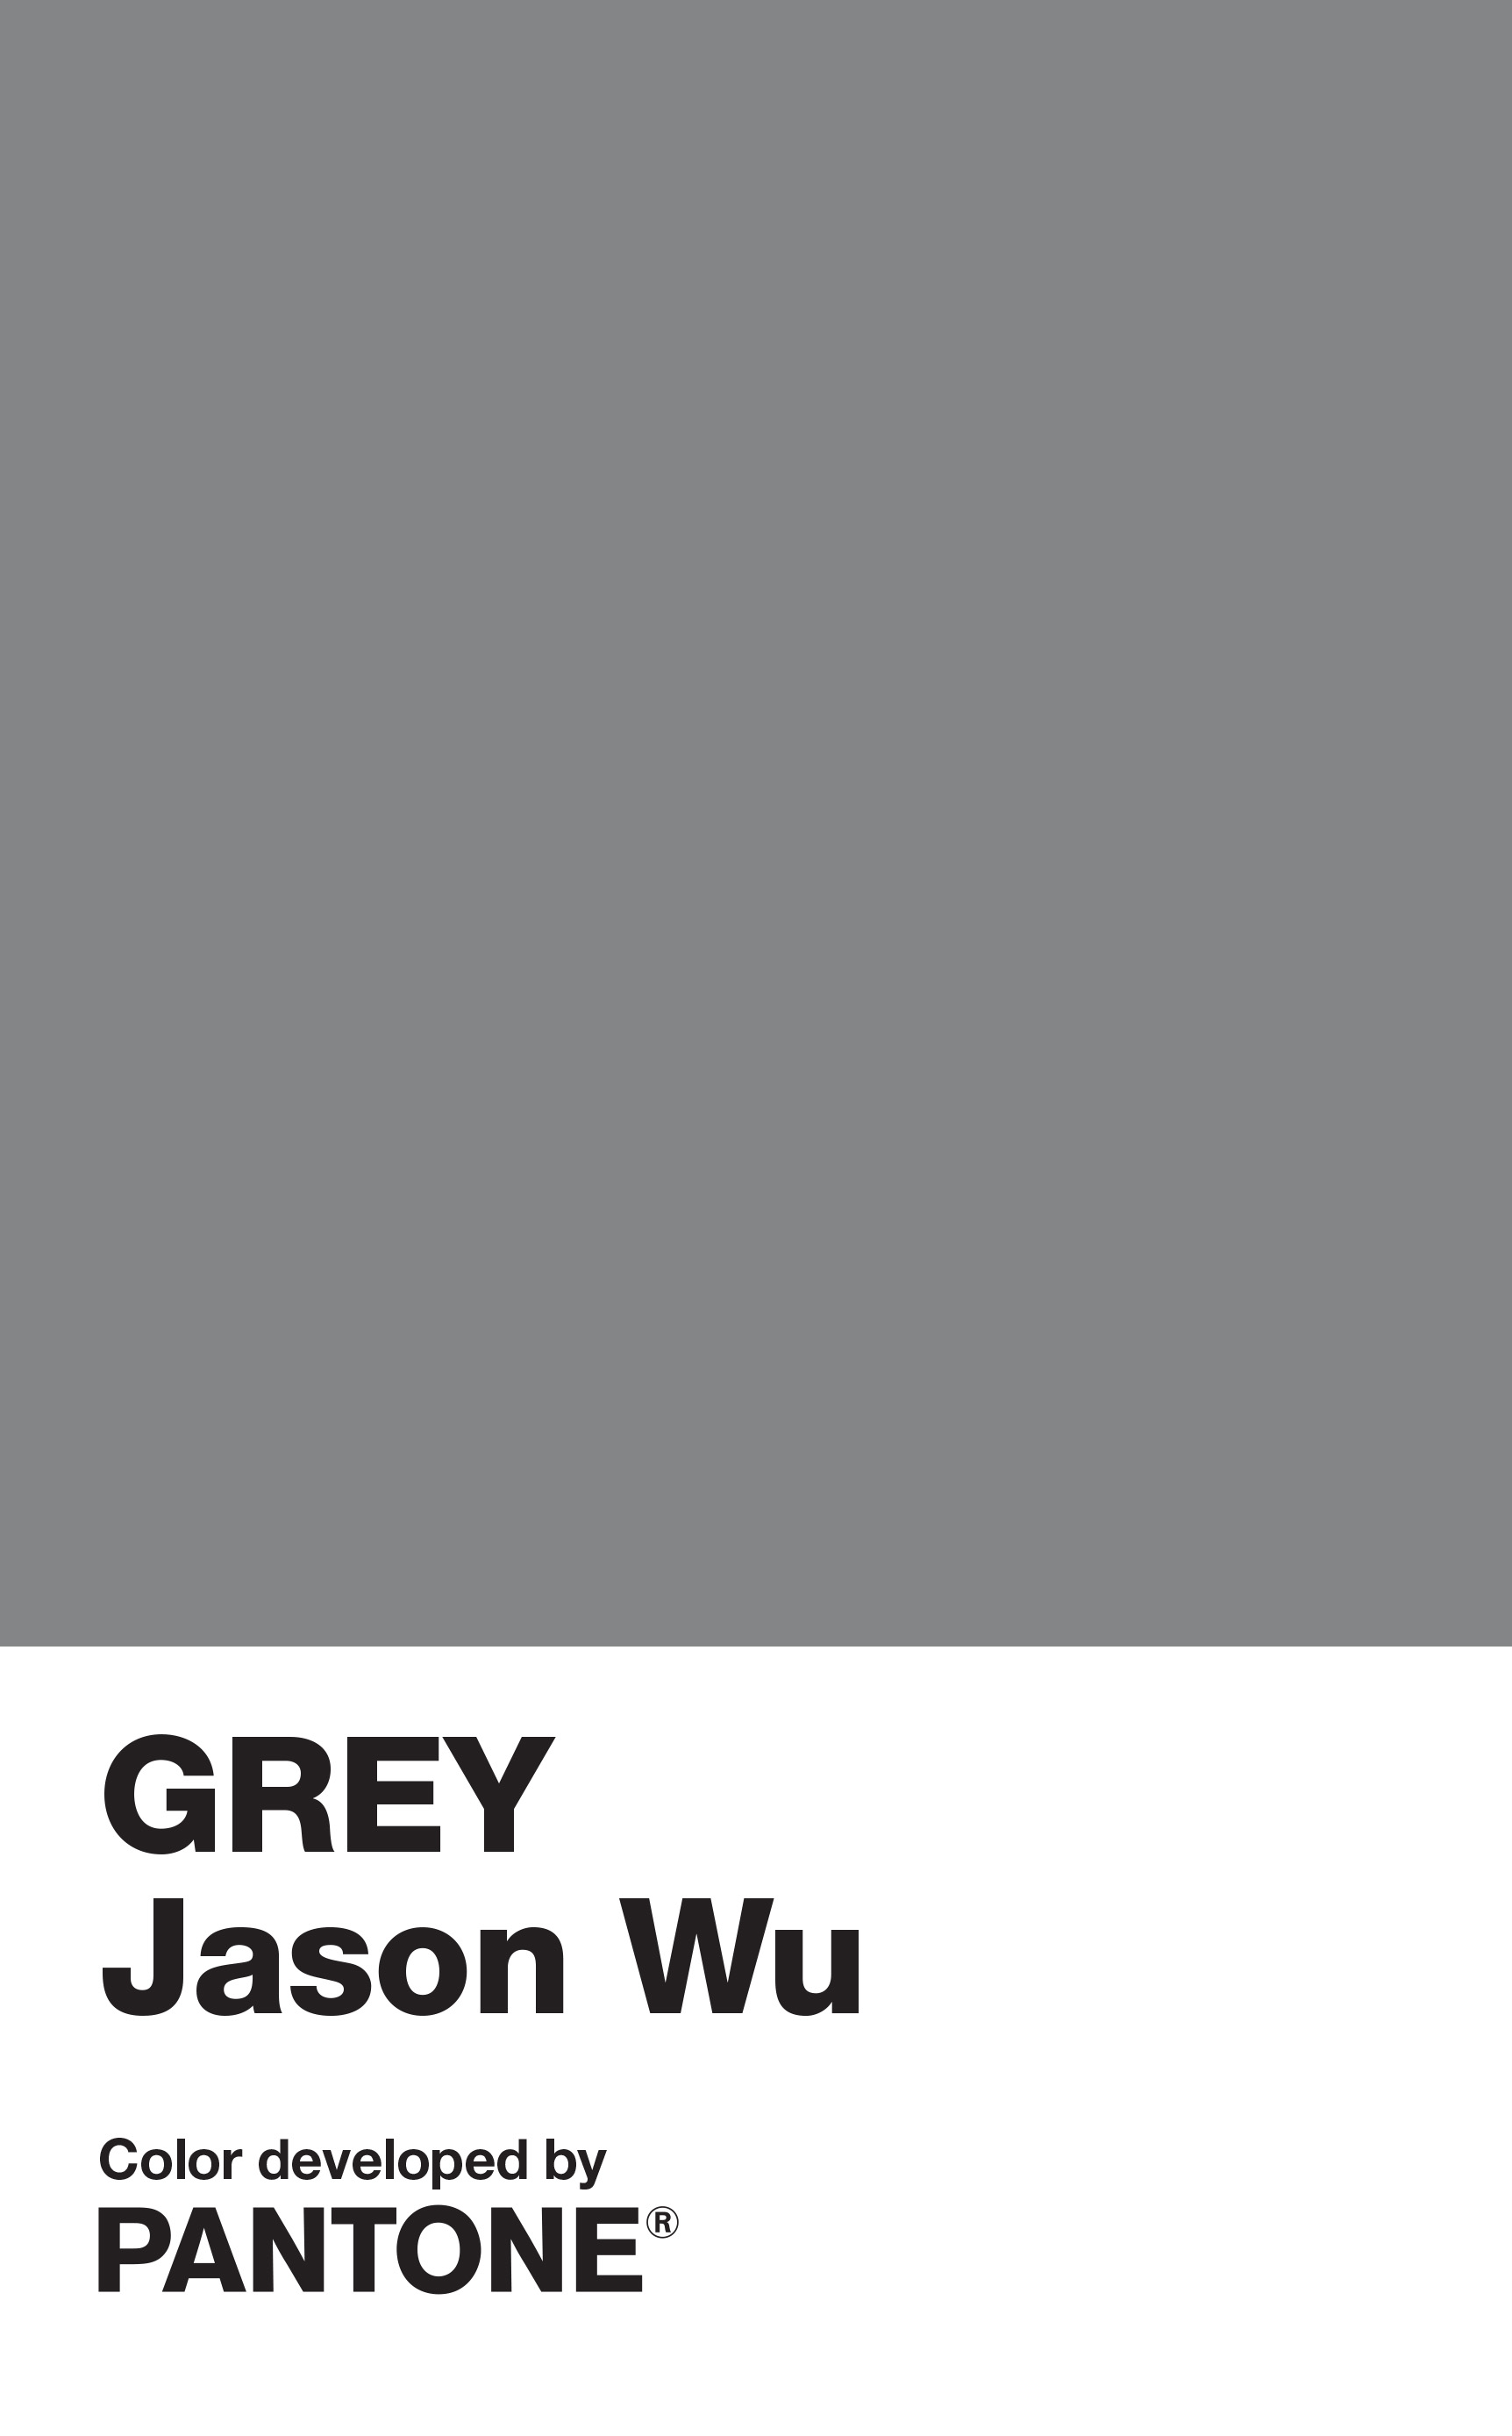 Jason Wu Develops Exclusive Pantone Color for Grey Launch – WWD